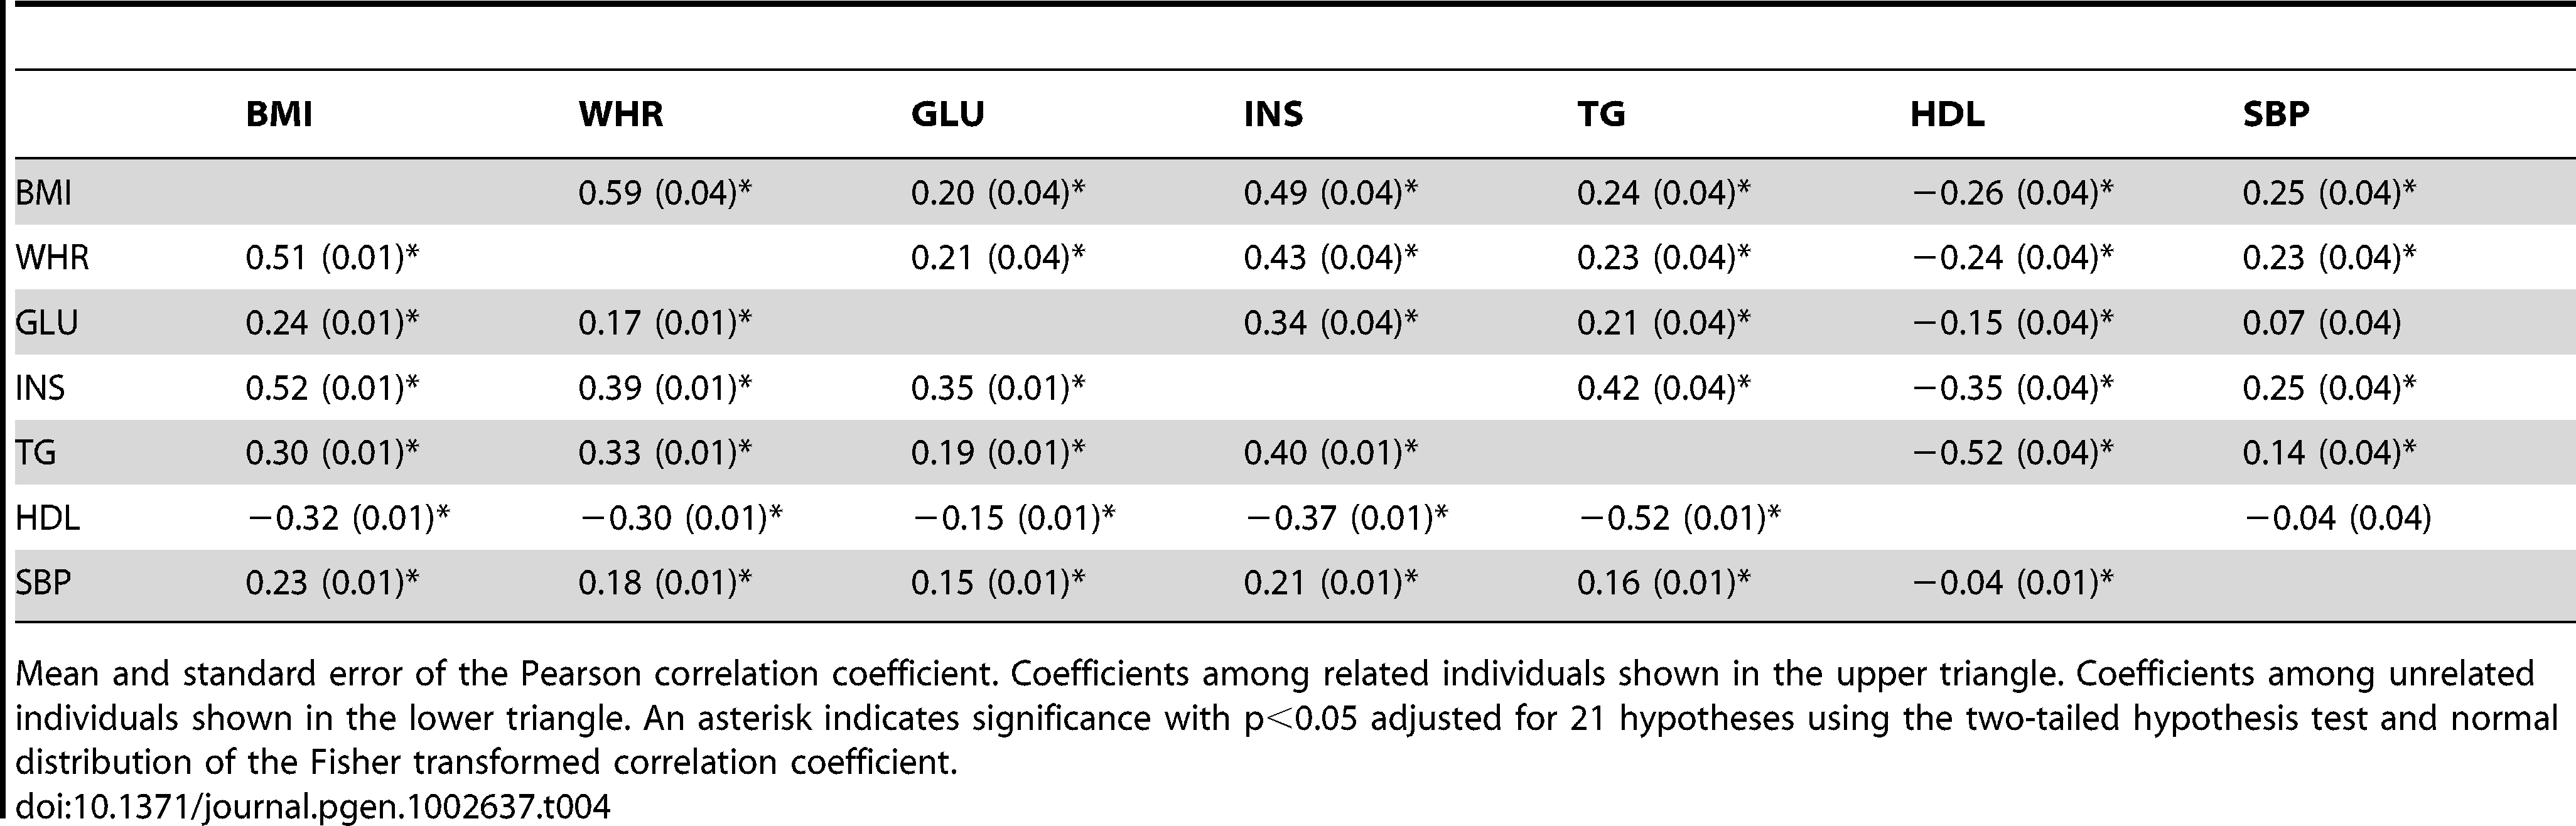 Phenotypic correlation coefficients between MetS traits in the ARIC population.